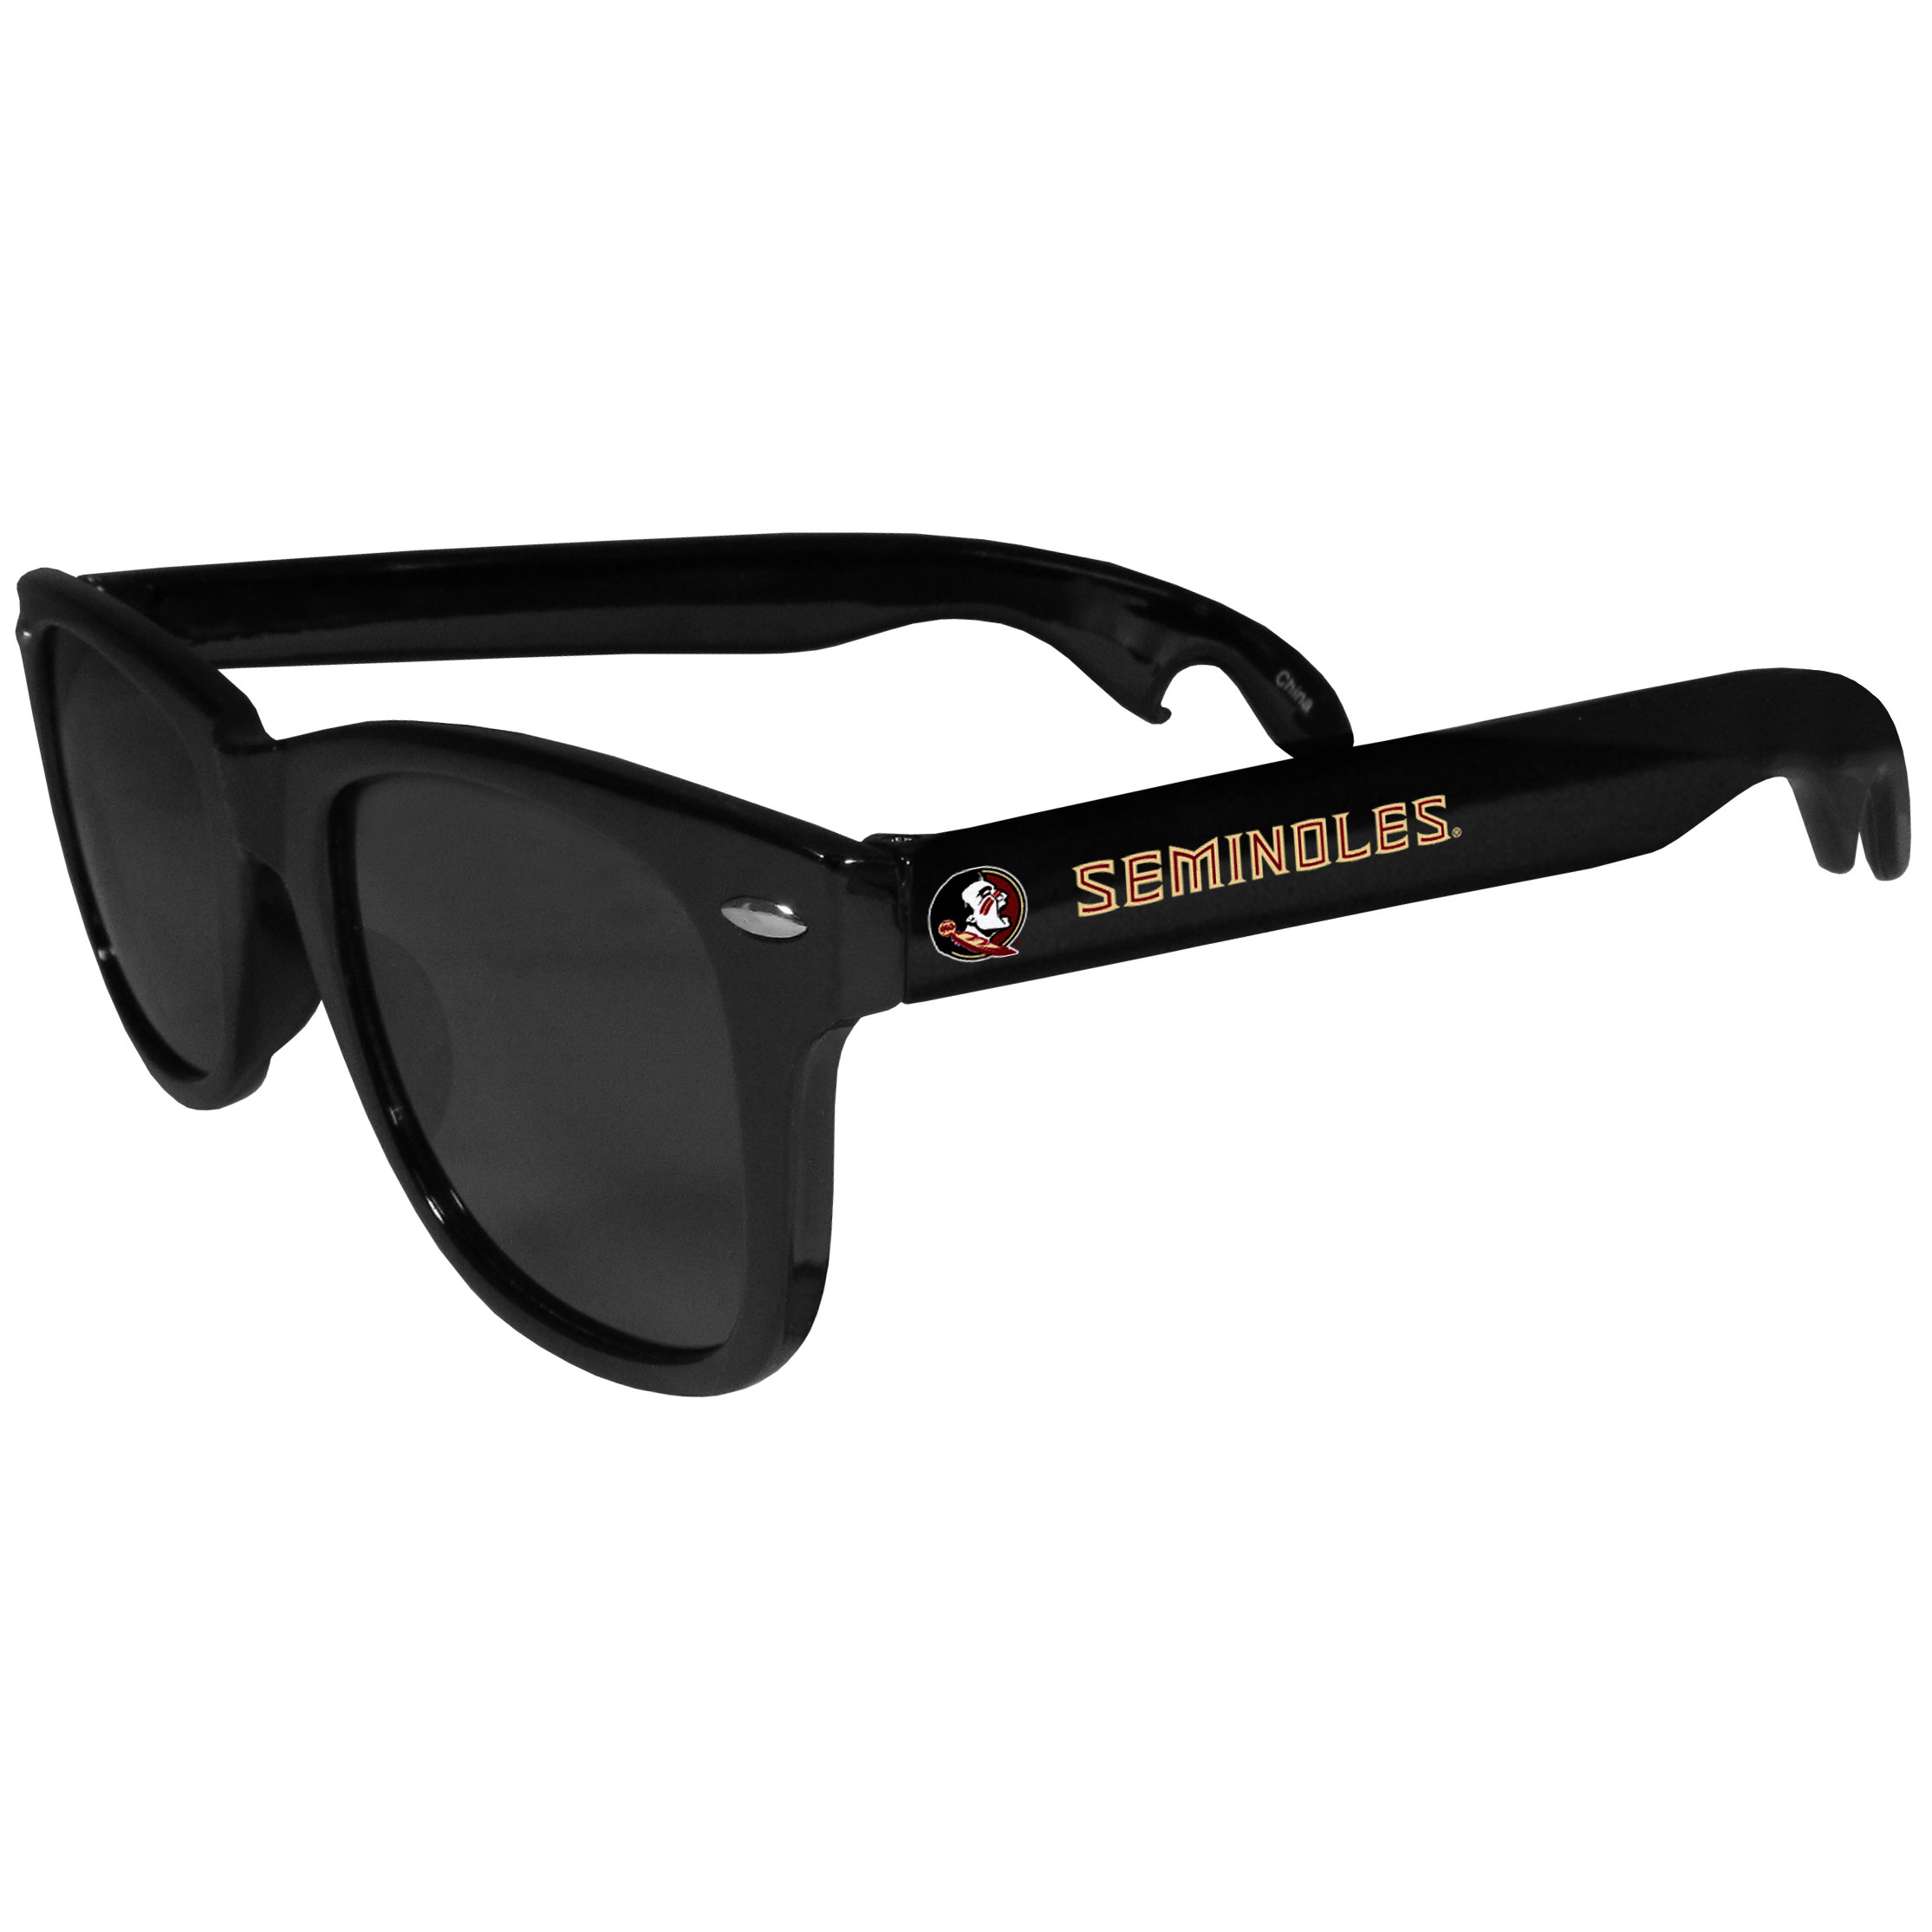 Florida St. Seminoles Beachfarer Bottle Opener Sunglasses - Seriously, these sunglasses open bottles! Keep the party going with these amazing Florida St. Seminoles bottle opener sunglasses. The stylish retro frames feature team designs on the arms and functional bottle openers on the end of the arms. Whether you are at the beach or having a backyard BBQ on game day, these shades will keep your eyes protected with 100% UVA/UVB protection and keep you hydrated with the handy bottle opener arms.